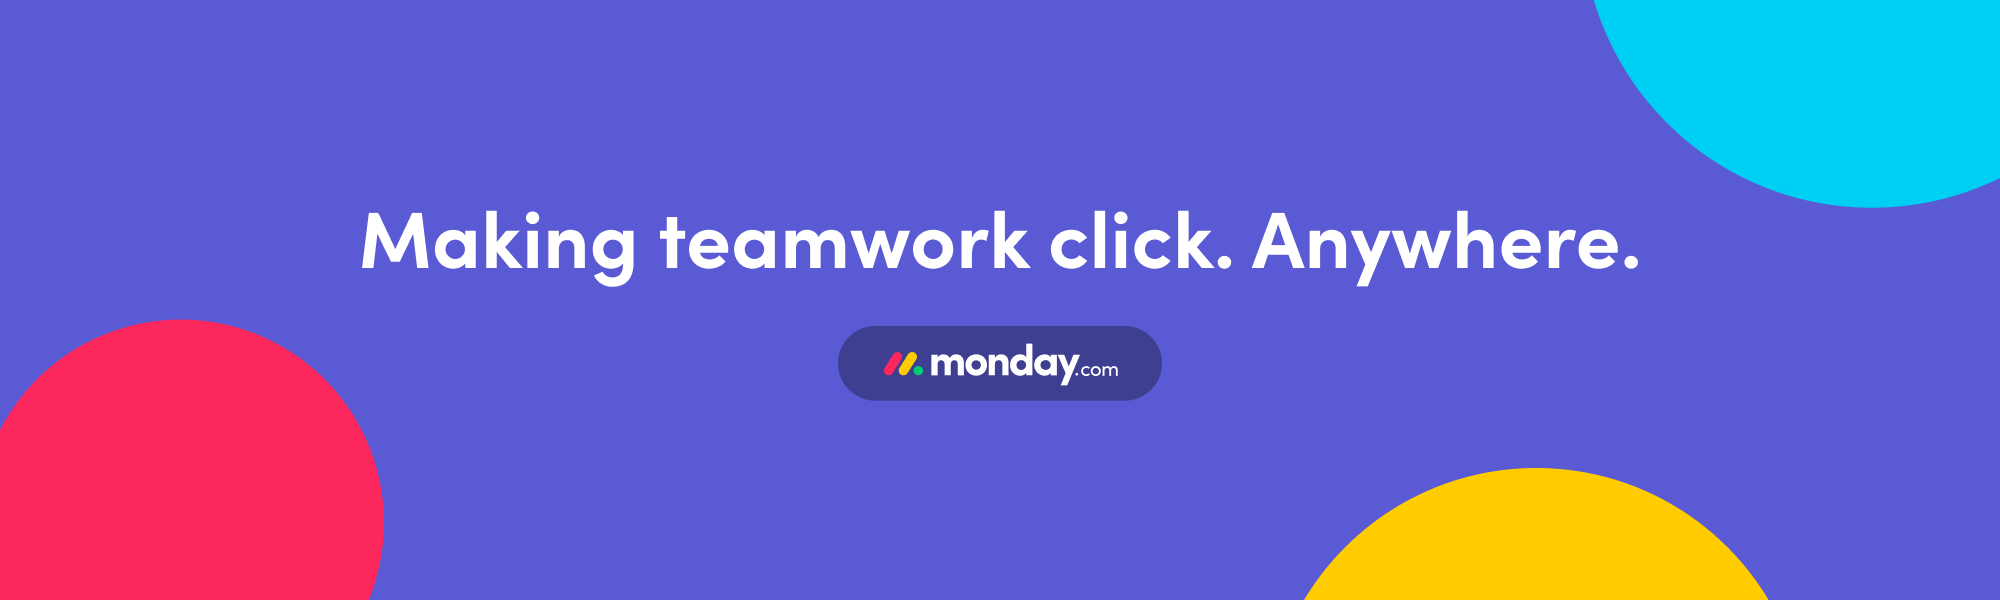 Review monday.com CRM: One Place to Manage Your Entire CRM Sales Pipeline - appvizer